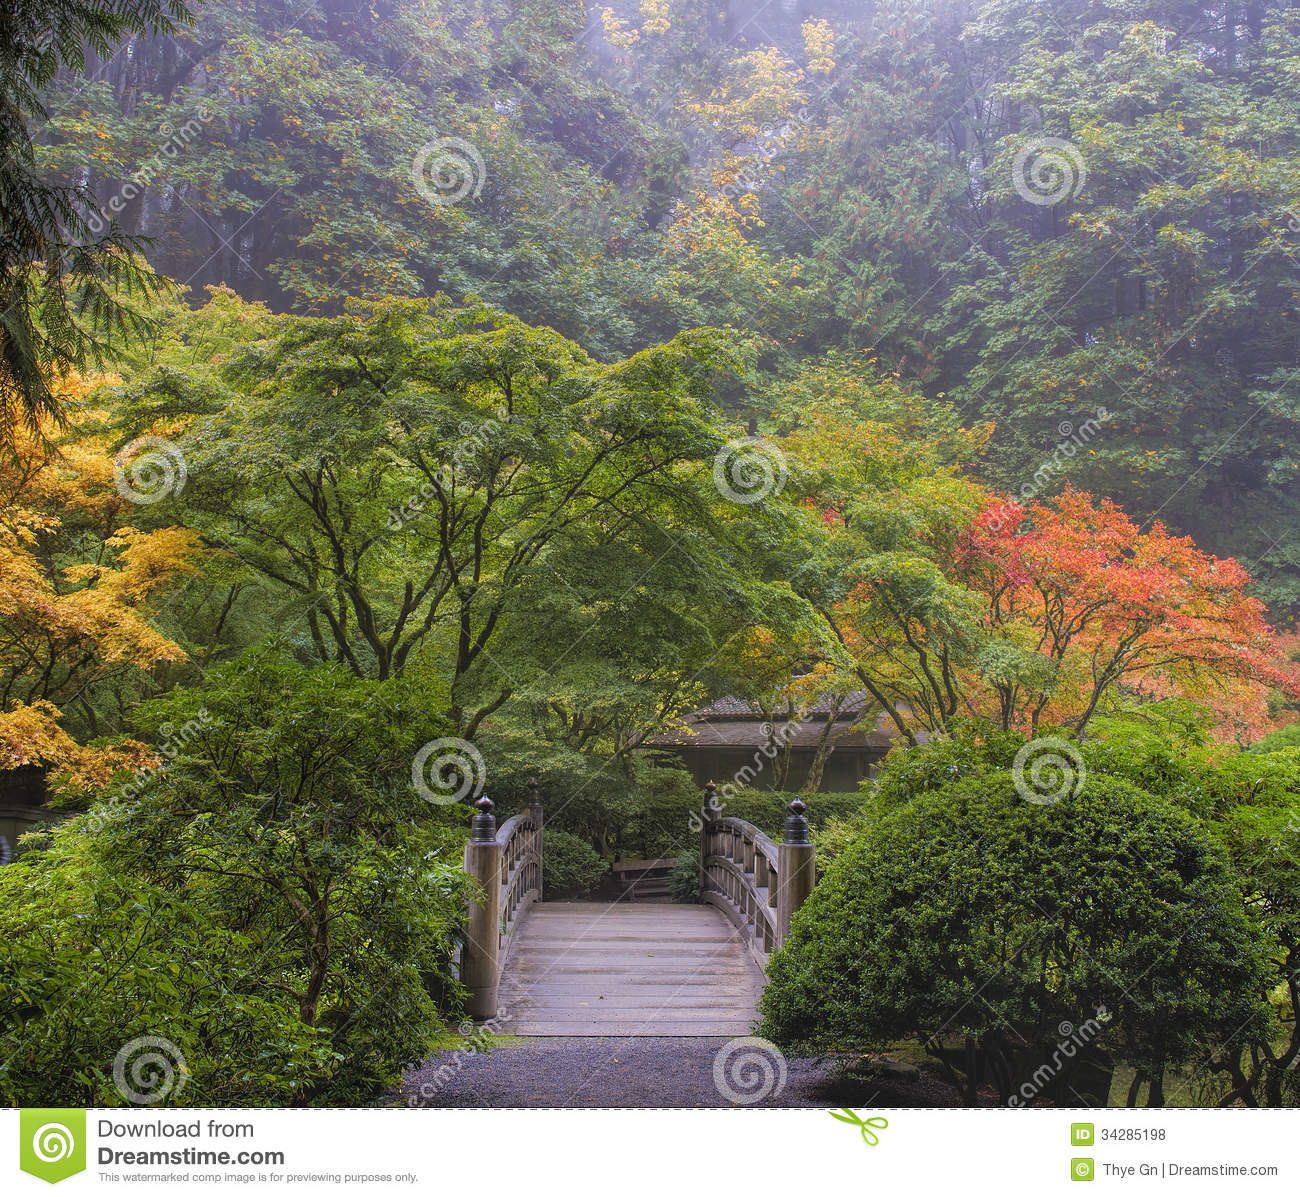 Foggy Morning In Japanese Garden With Wooden Foot Bridge During Fall